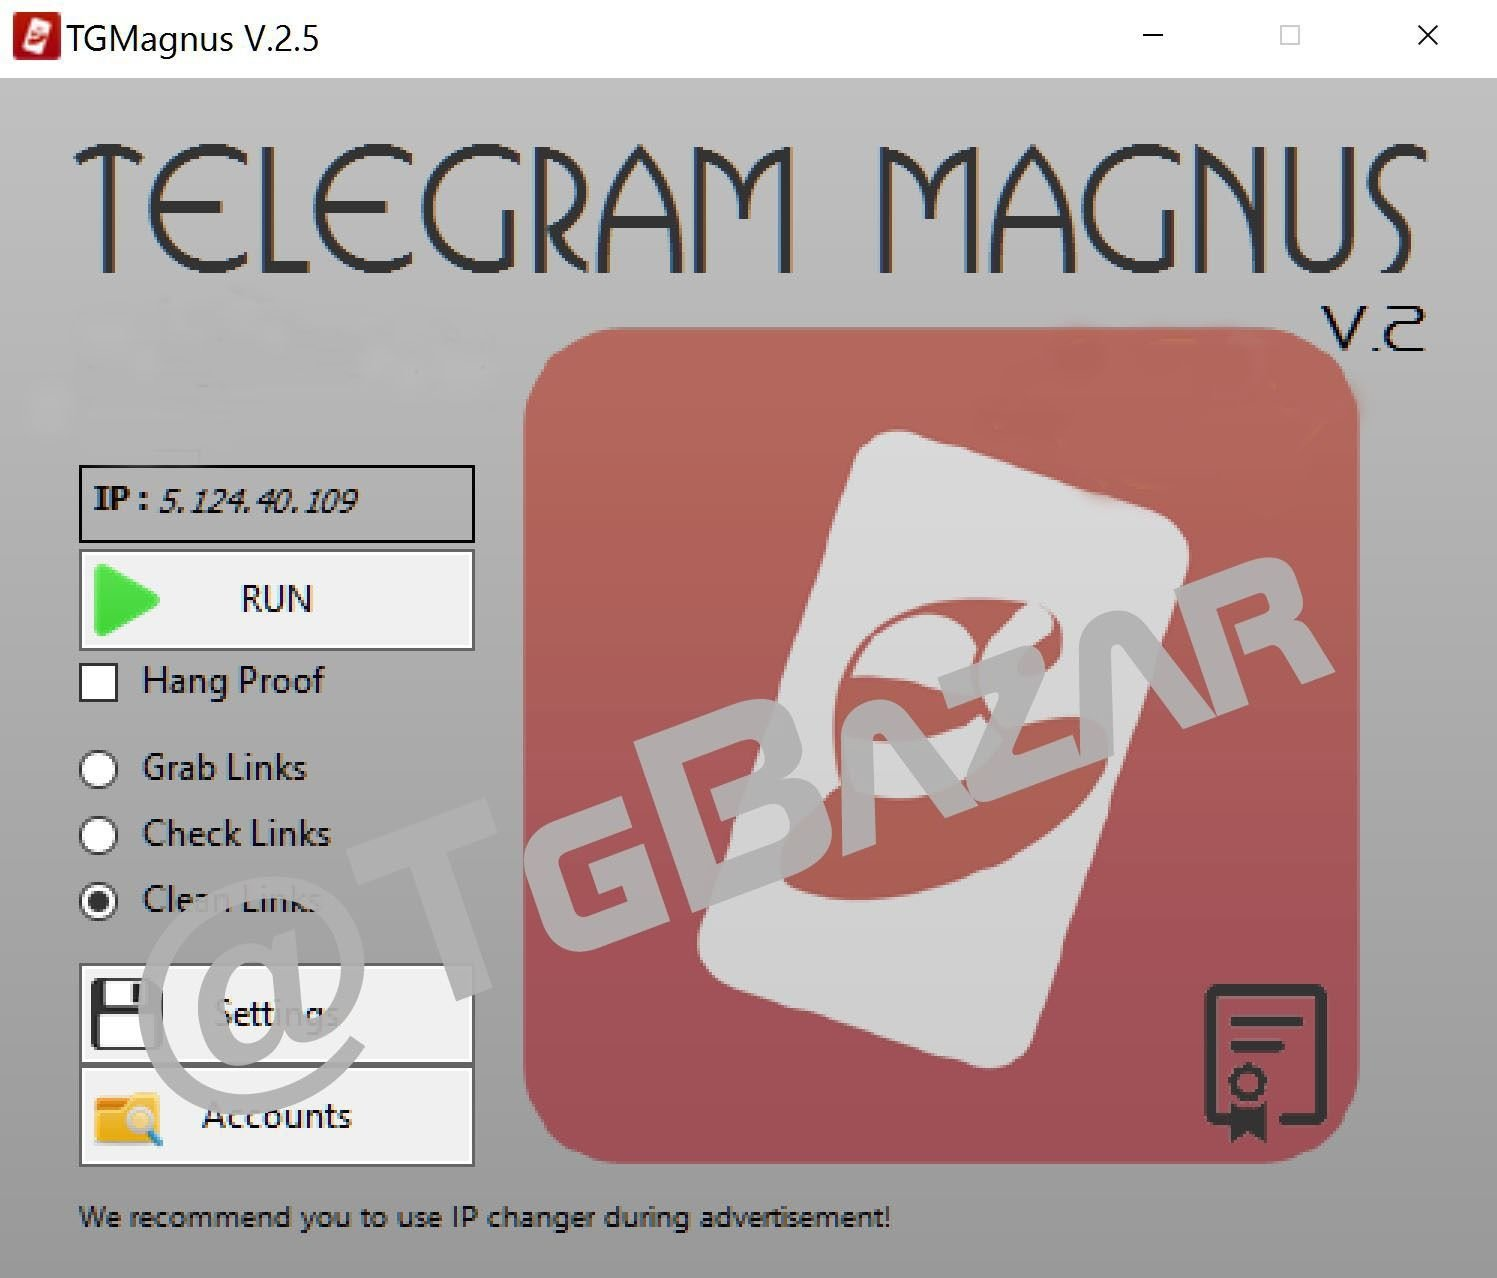 telegram magnus